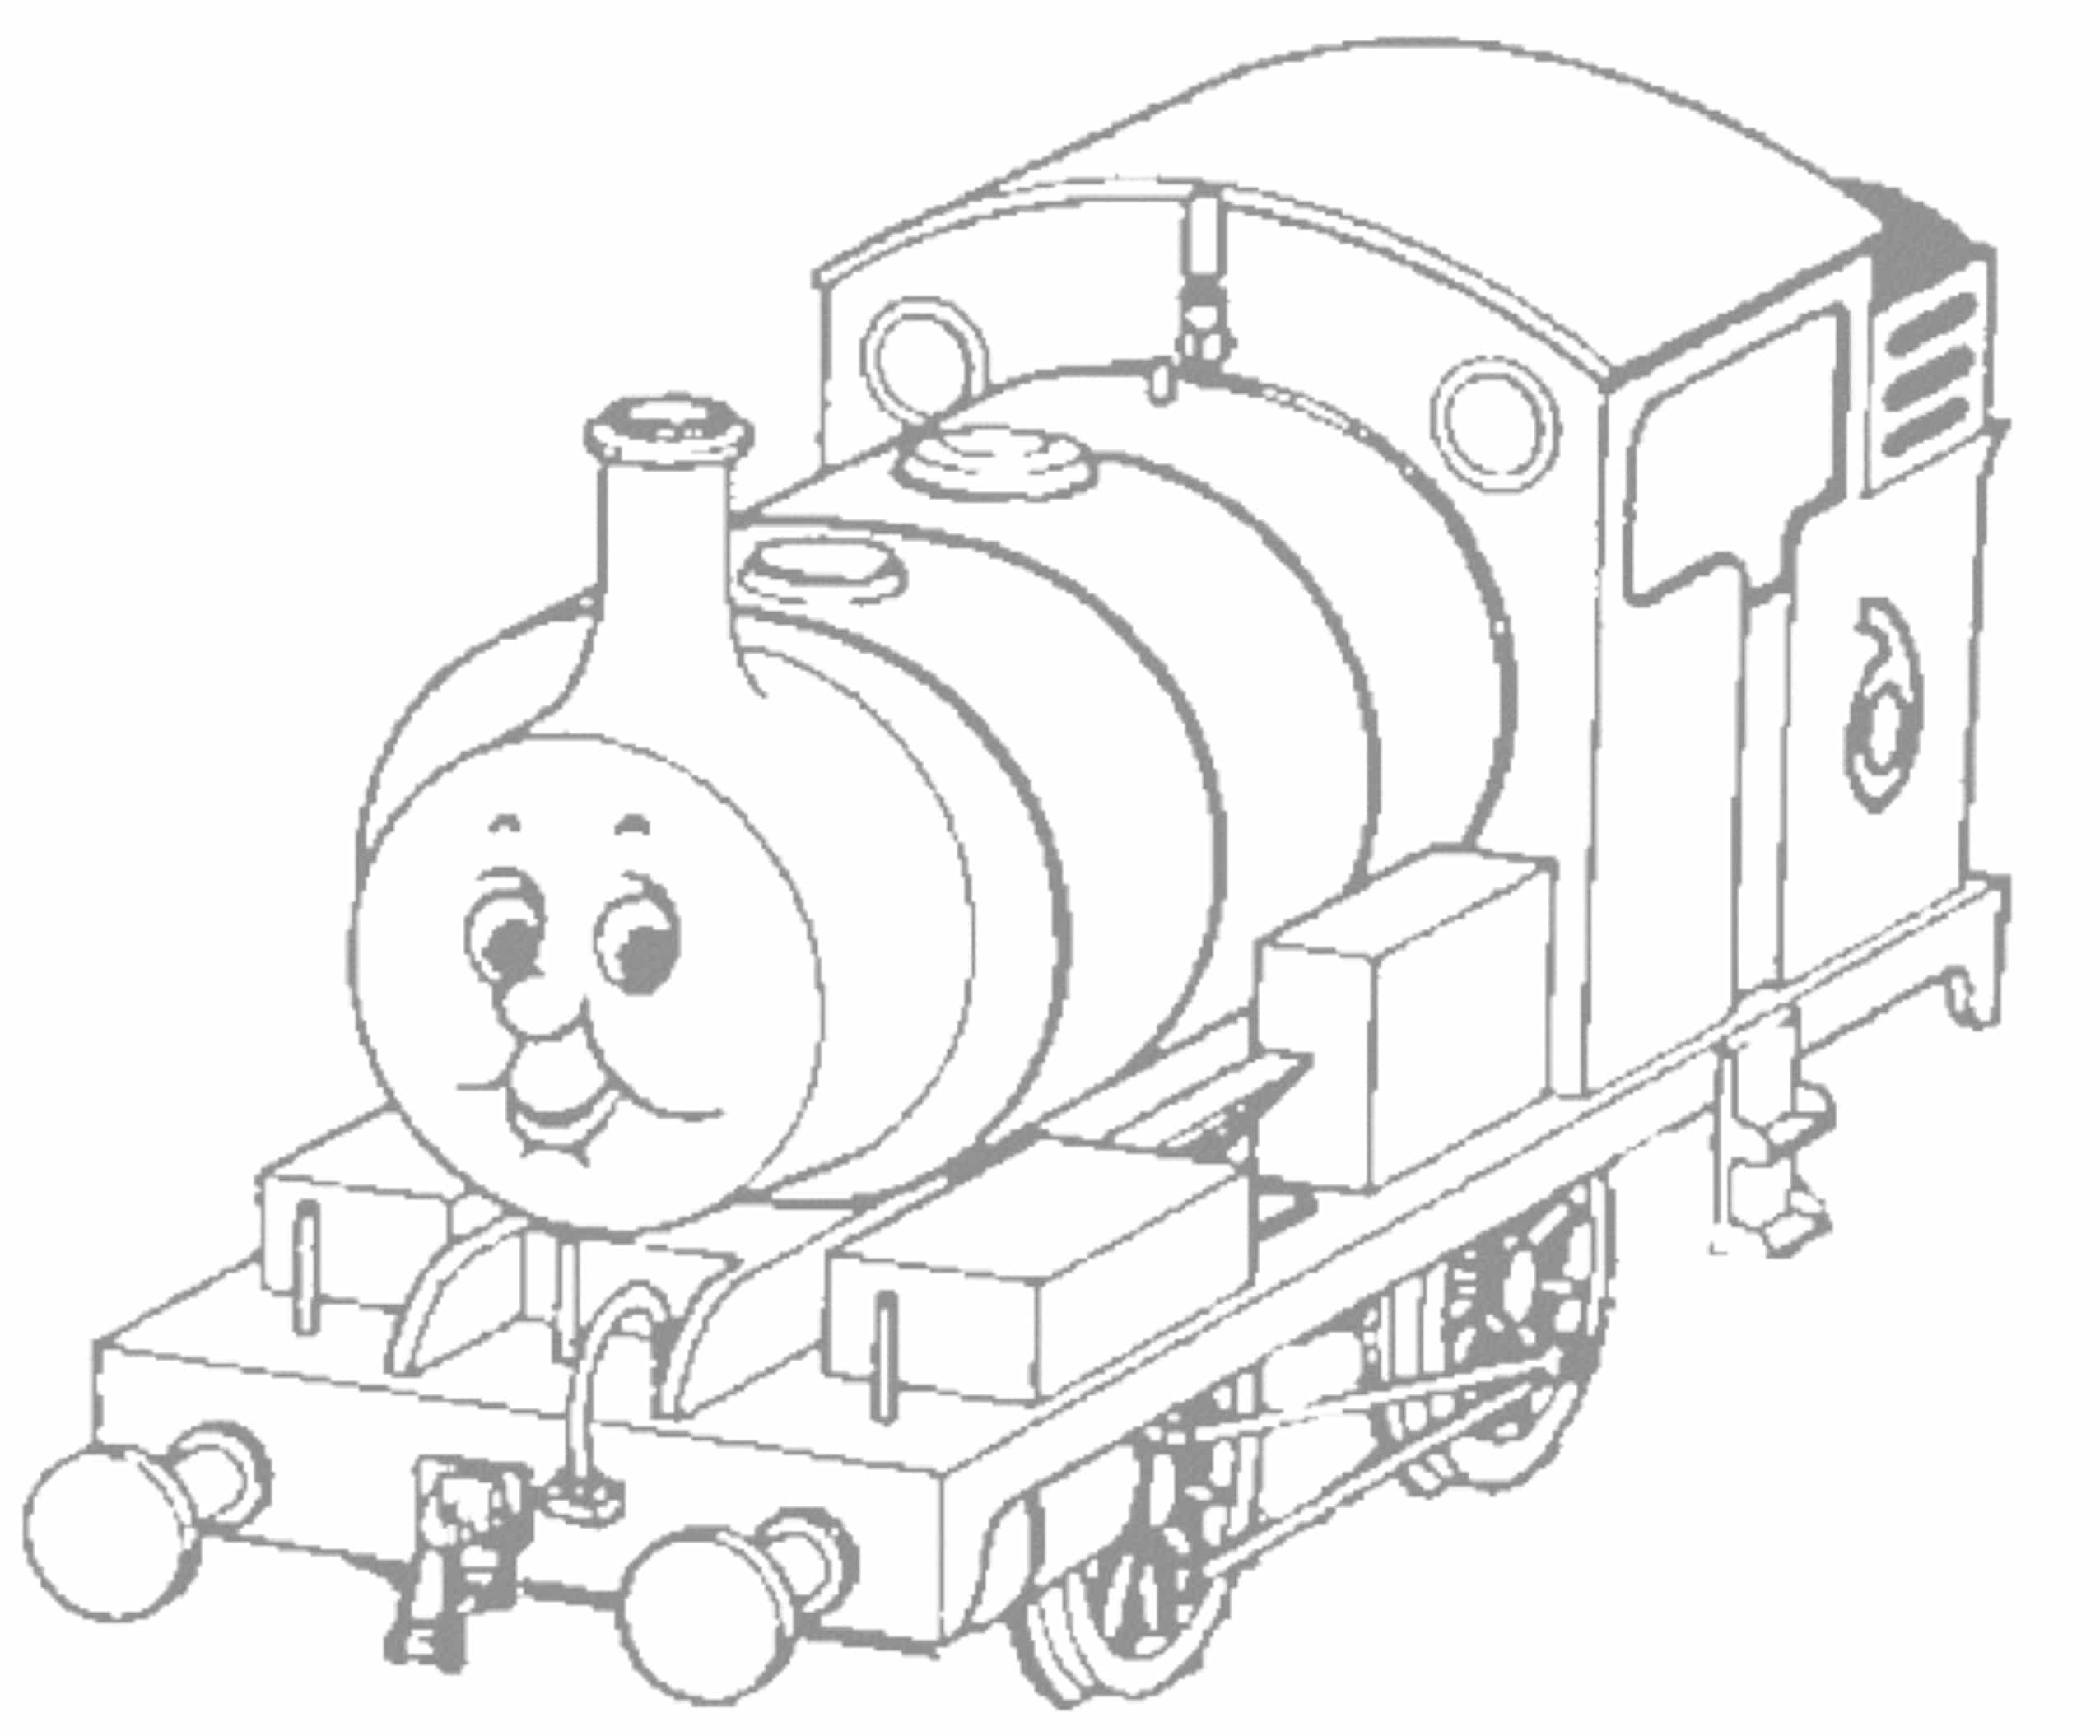 how to draw a steam engine train how to draw worksheets for the young artist how to draw a how a steam draw engine train to